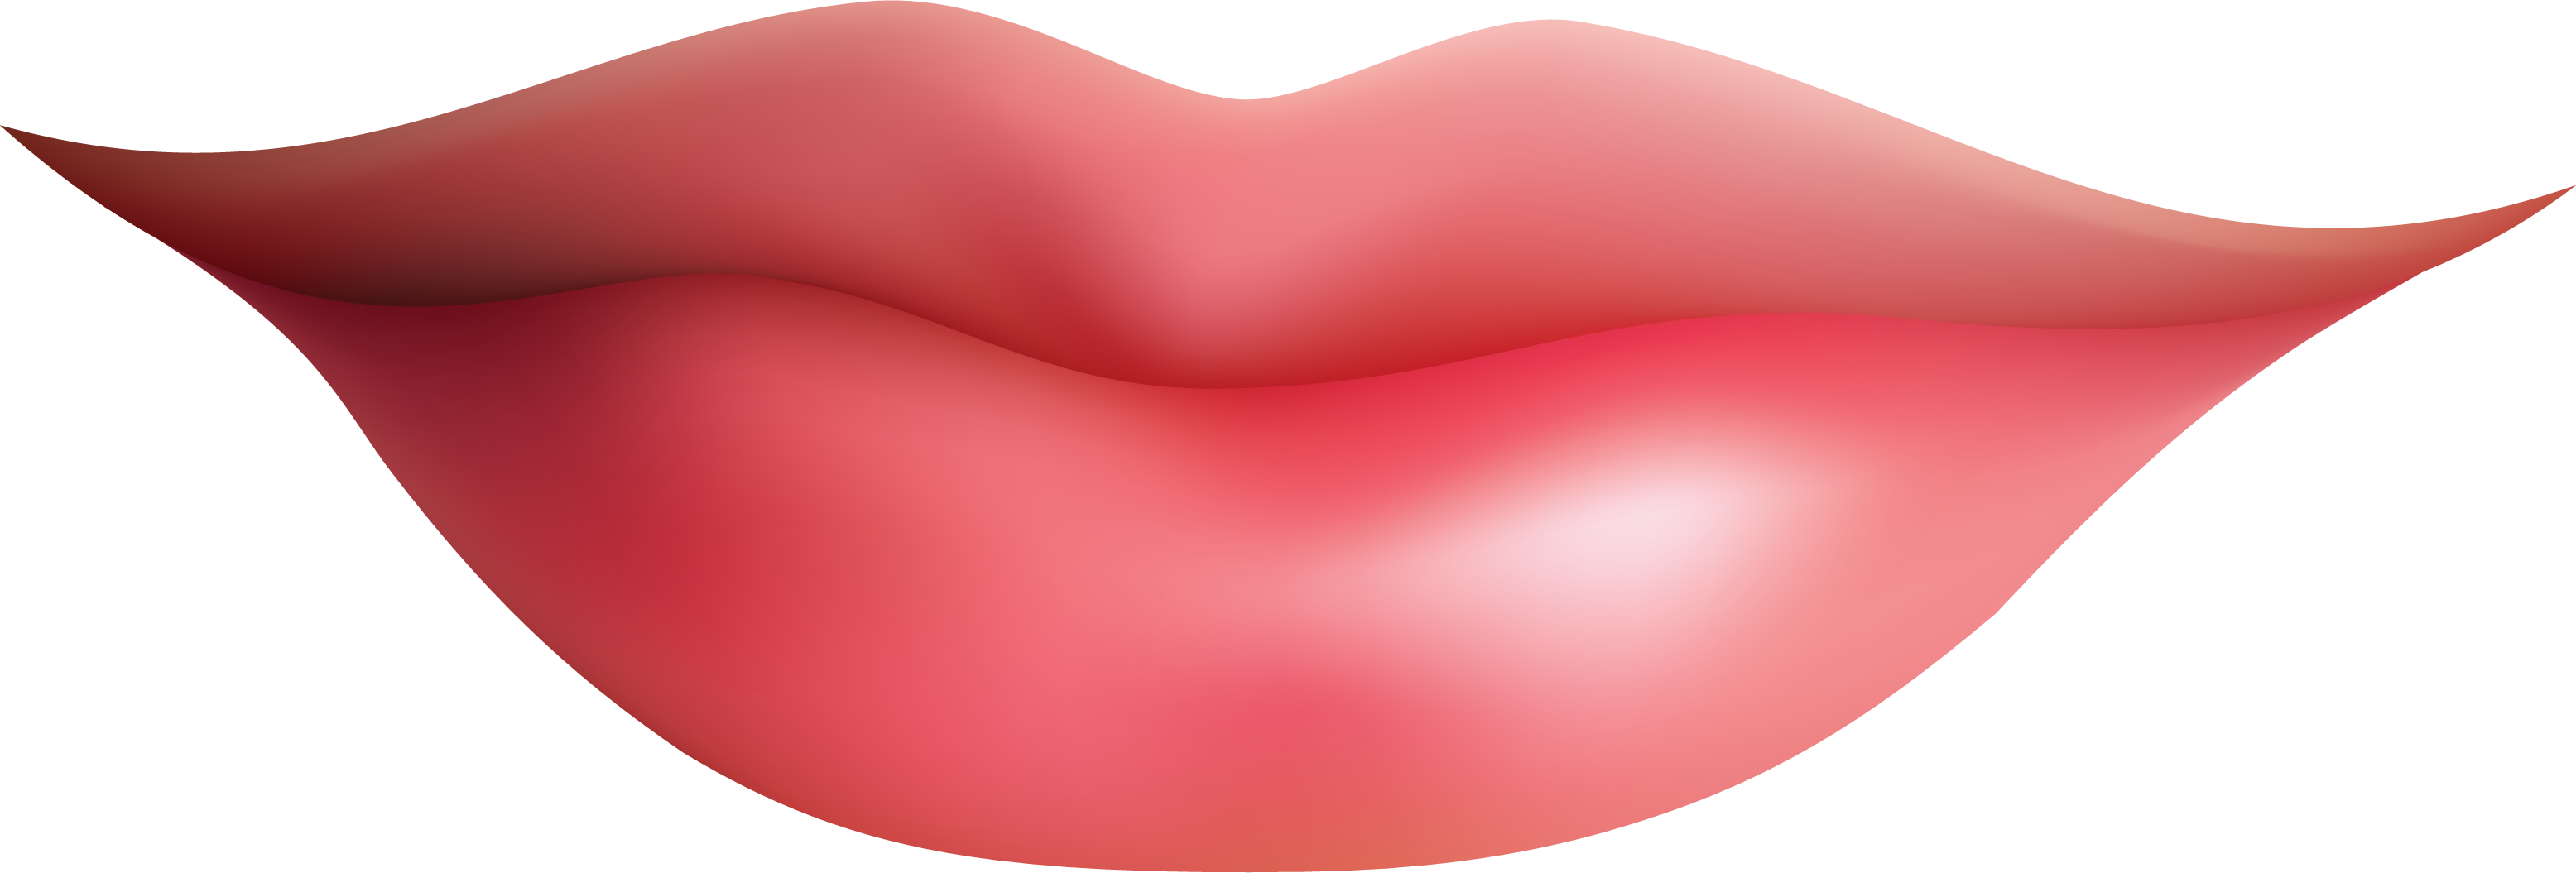 Mouth lips clipart web